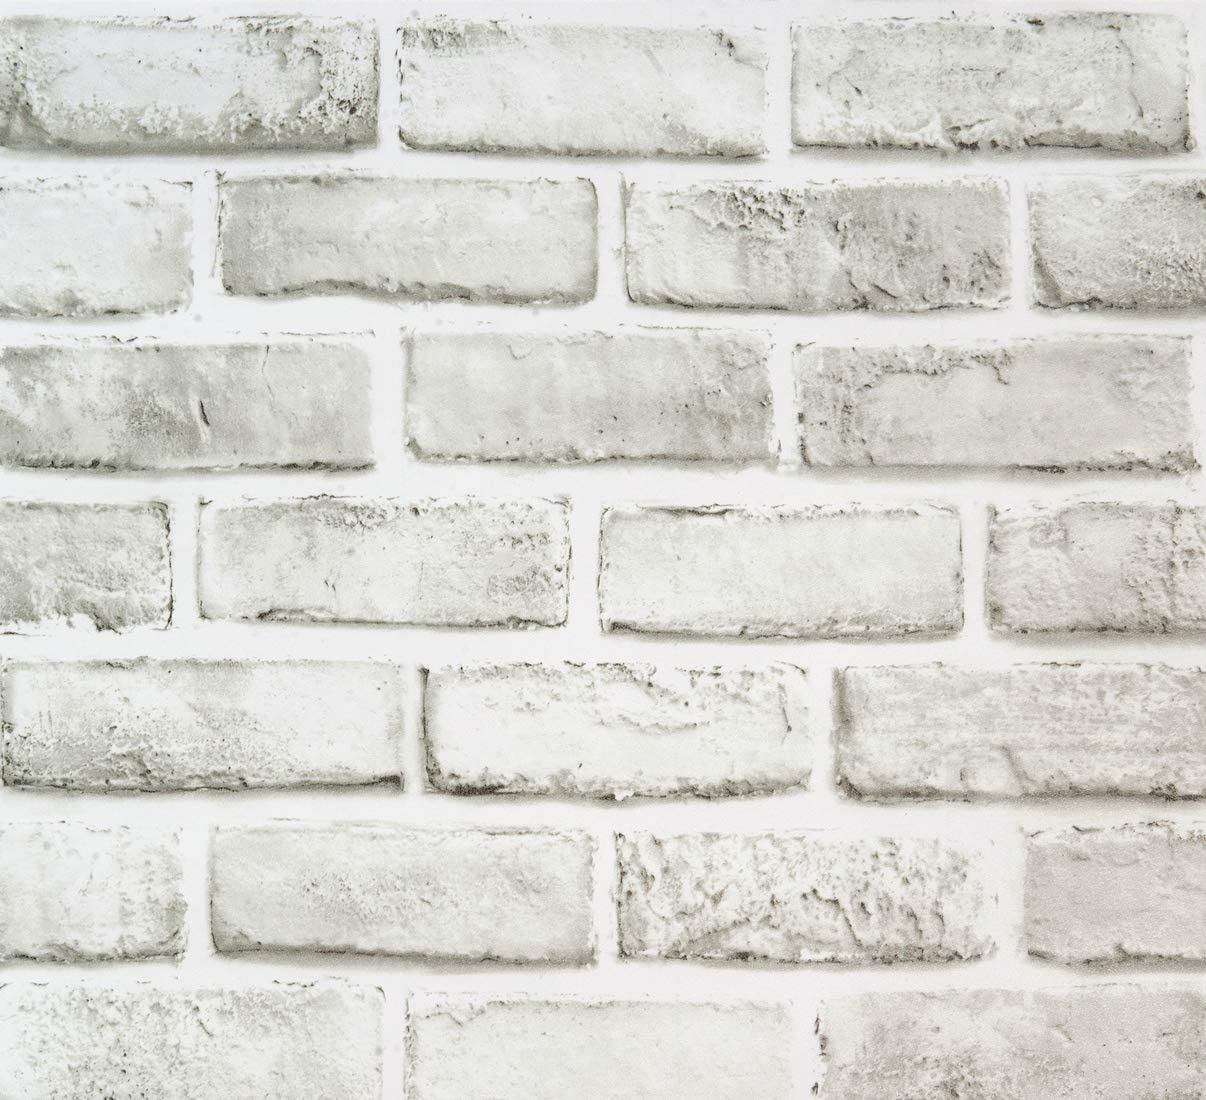 White Brick Peel And Stick Wallpaper Removable Wallpaper Cleanable Wall Paper Shelf Paper Self Adhesive Grey White Brick Vinyl Pattern Bathroom Backsplash 17 7 In X 393 7 In Fireplace Decoration Home Kitchen